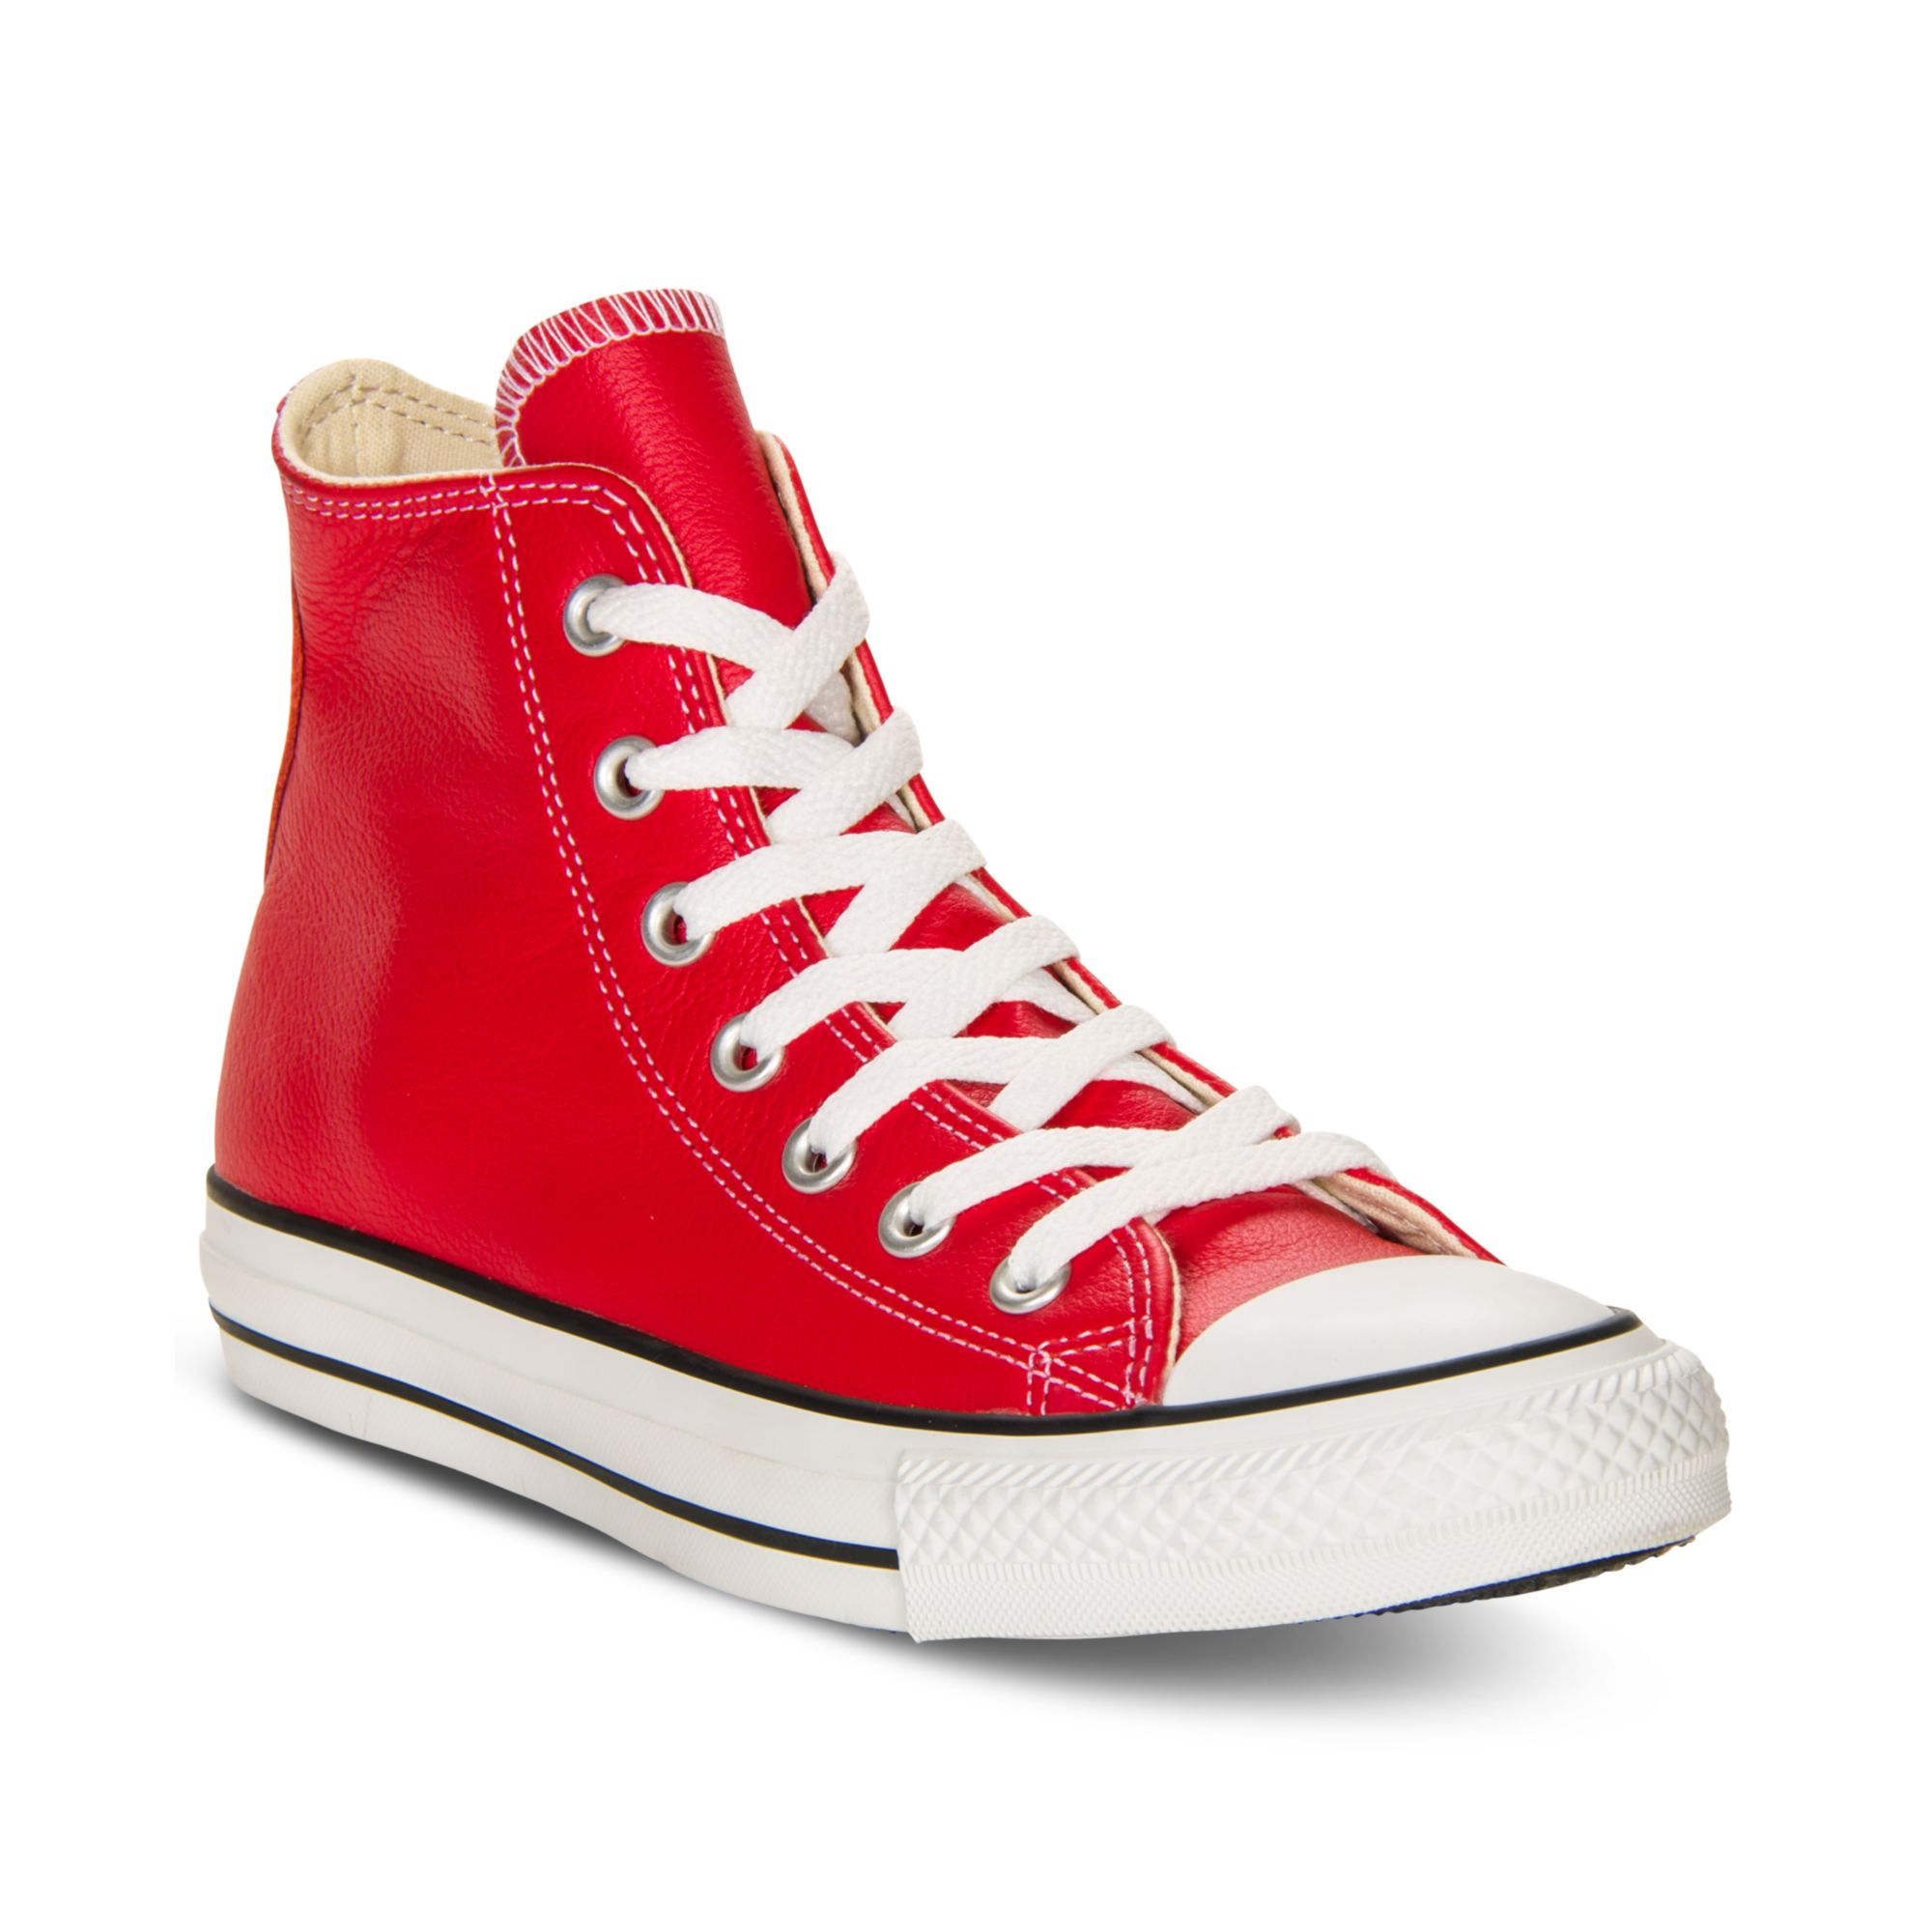 Vans 2016 All Red Yeezy Classic Sk8-Hi Fashion Canvas ...  |All Red Shoes For Men